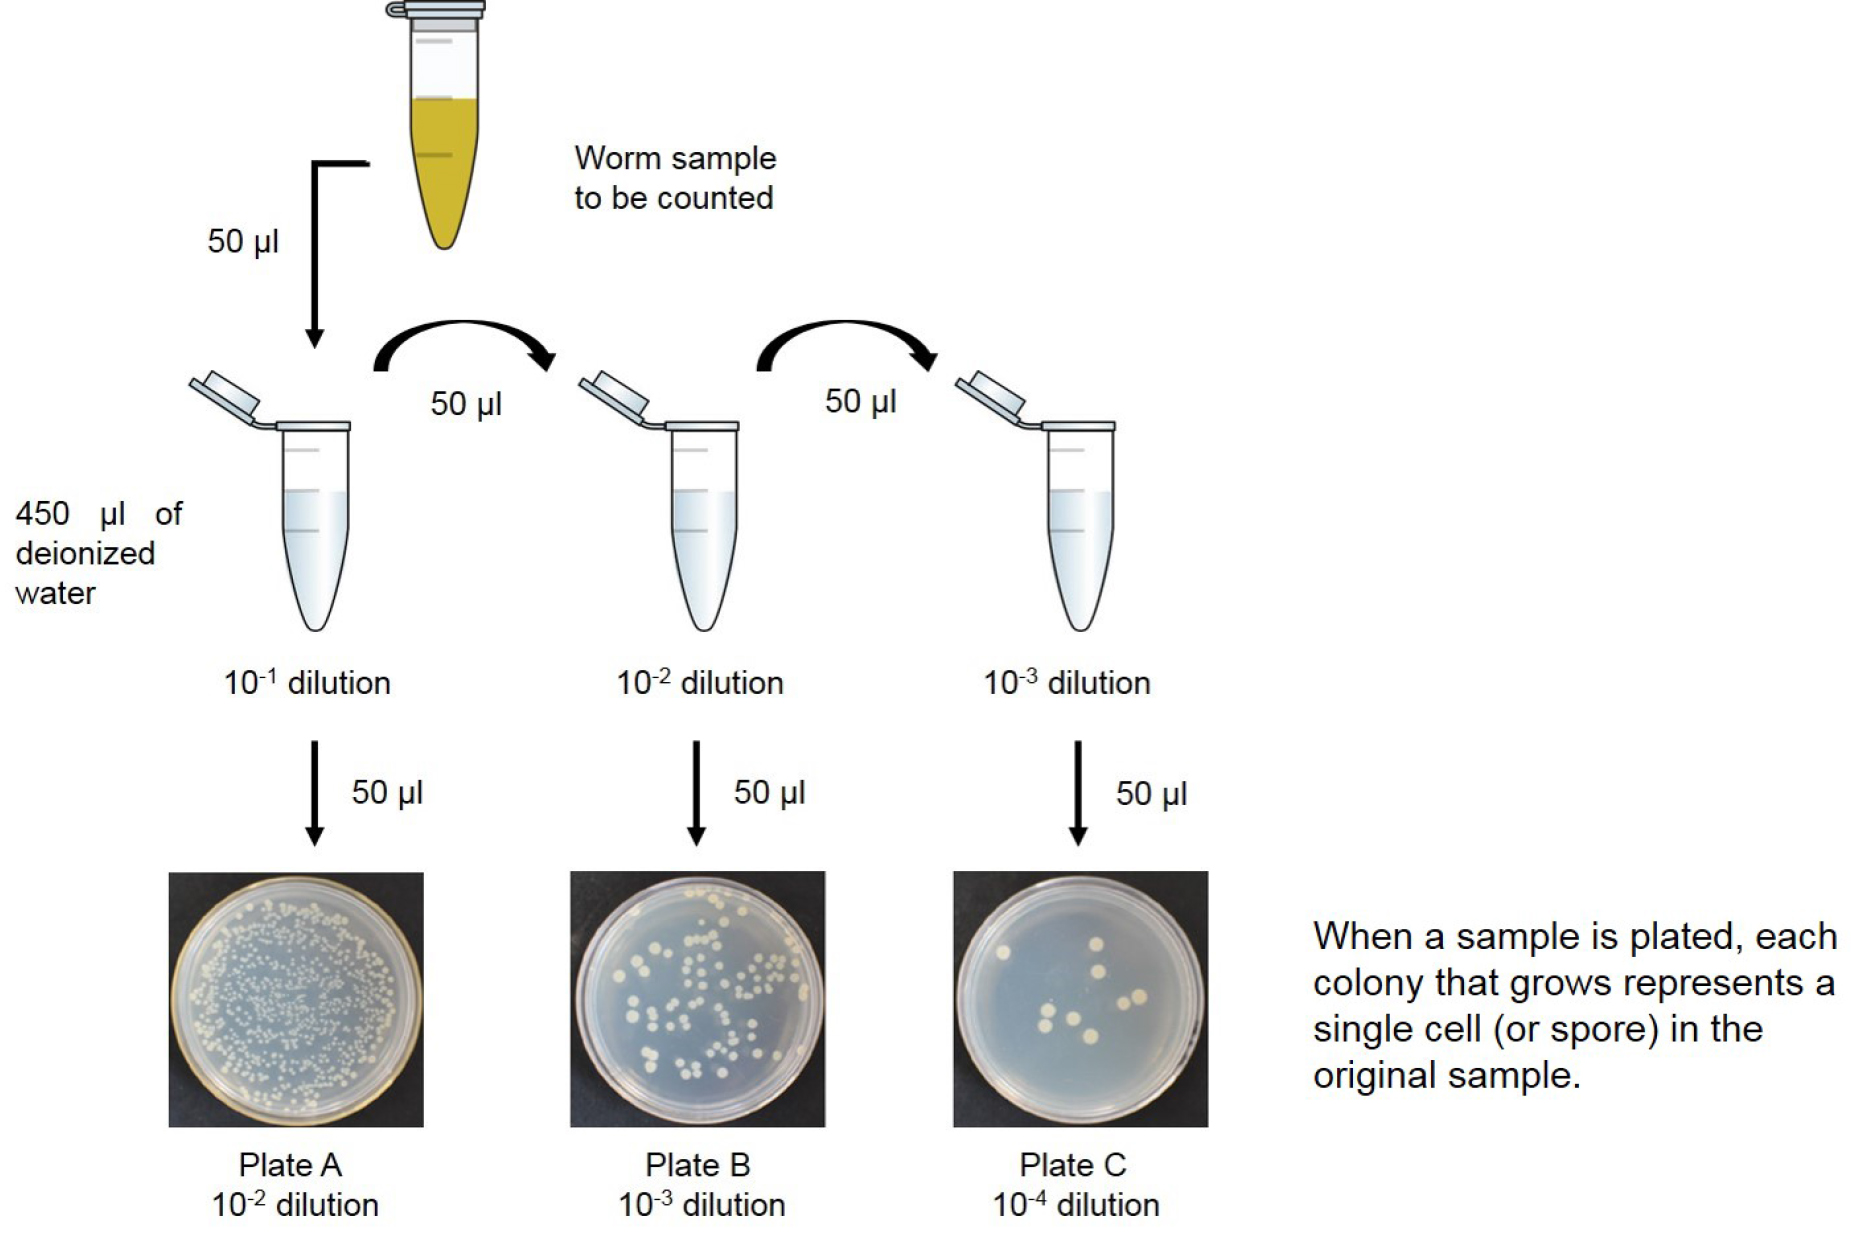 hight resolution of figure 1 diagram of how to prepare bacterial dilutions serial dilution of an initial culture to obtain solutions that are 1 10th 1 100th and 1 1 000th